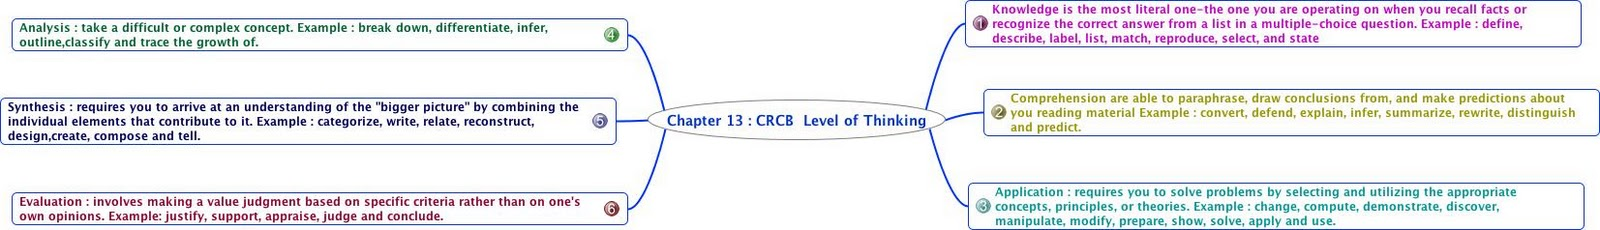 critical thinking and clinical application questions chapter 6